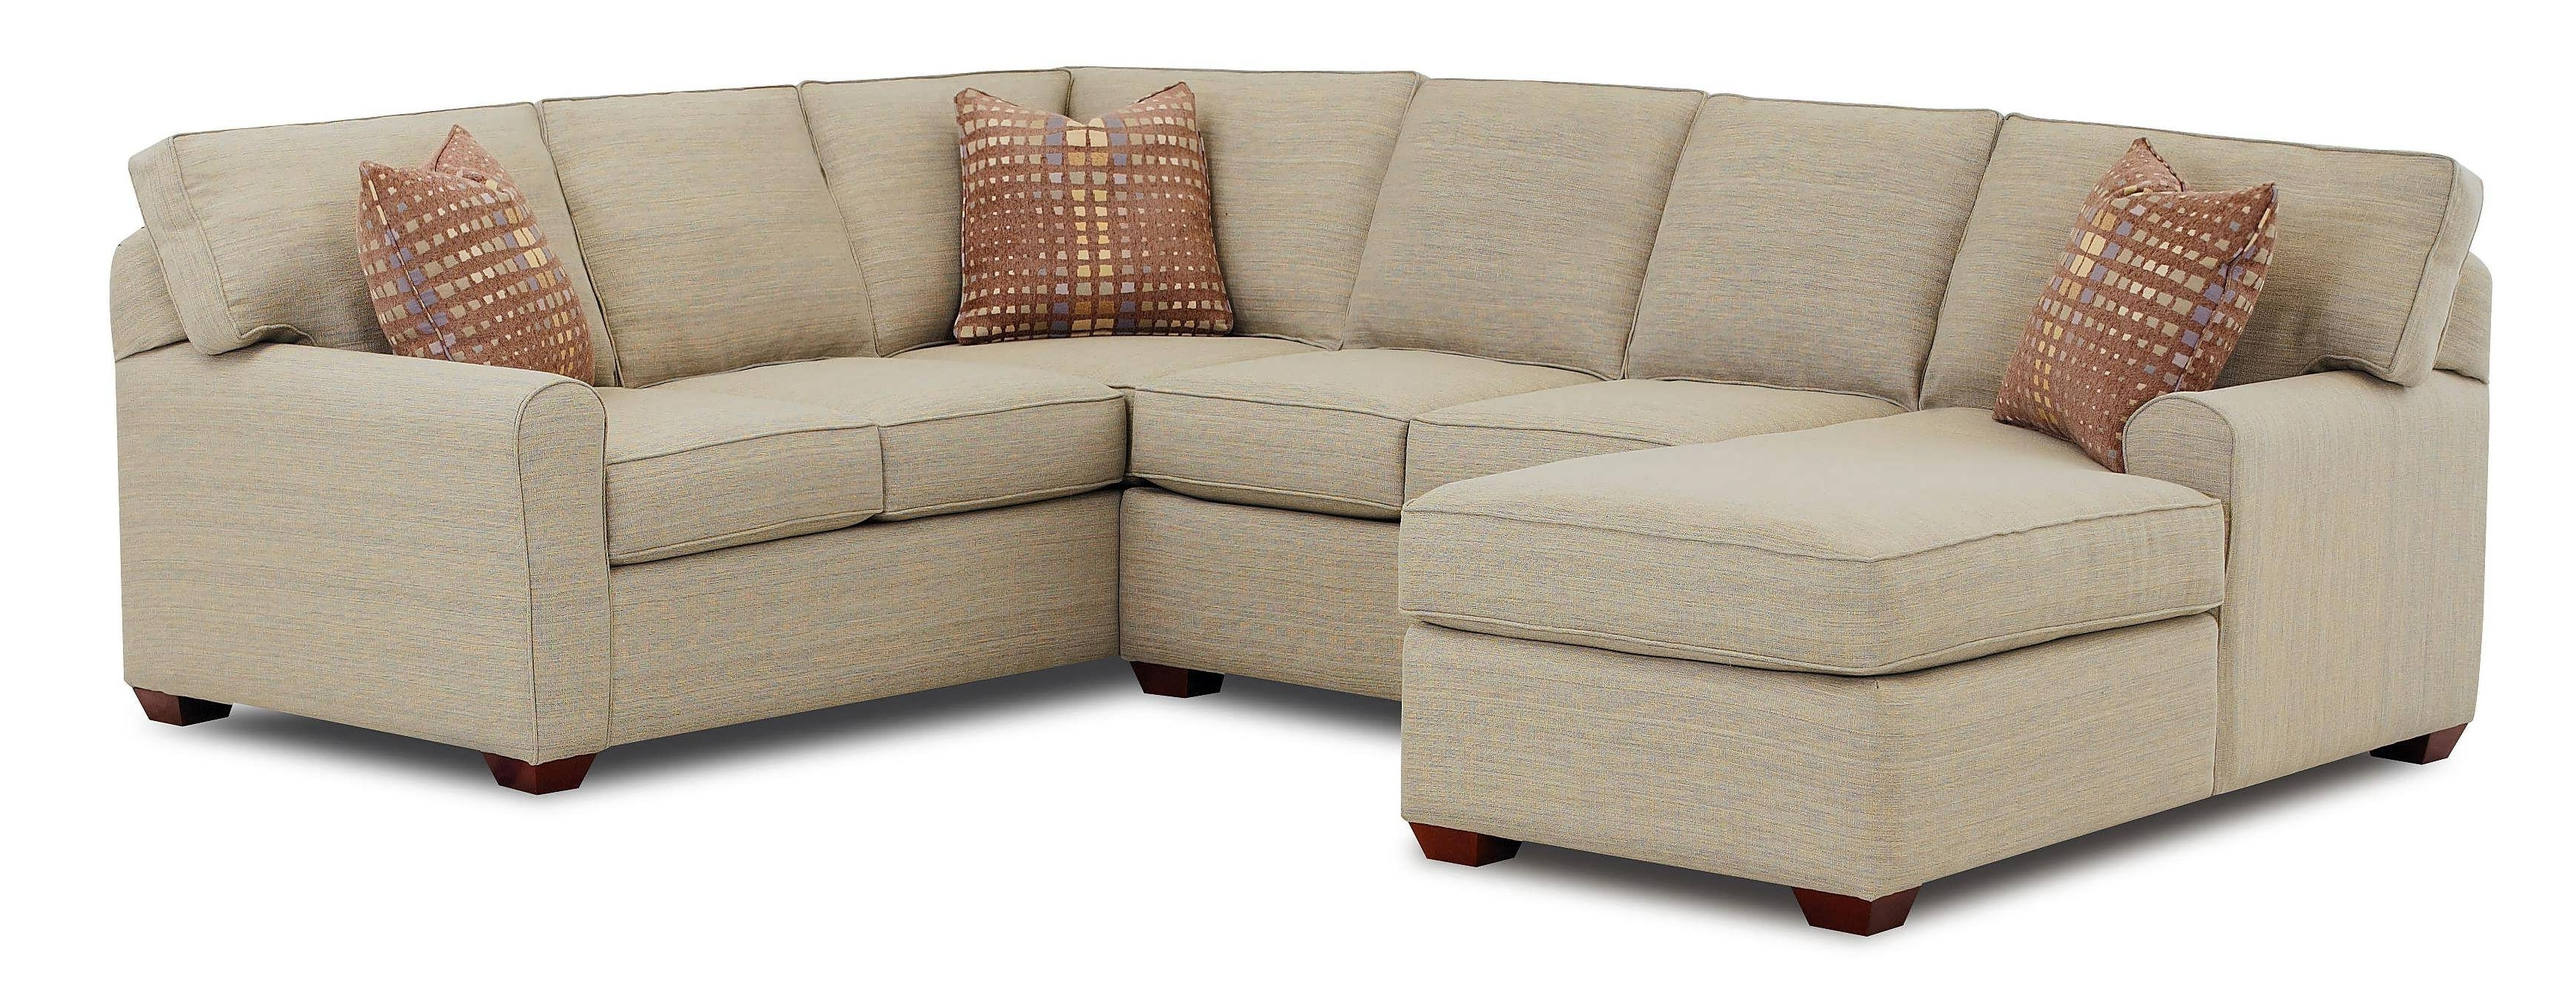 Latest Sofa : L Shaped Couch 3 Piece Sectional Sofa Modular Sofa Bed Pertaining To Couches With Chaise Lounge (View 13 of 15)